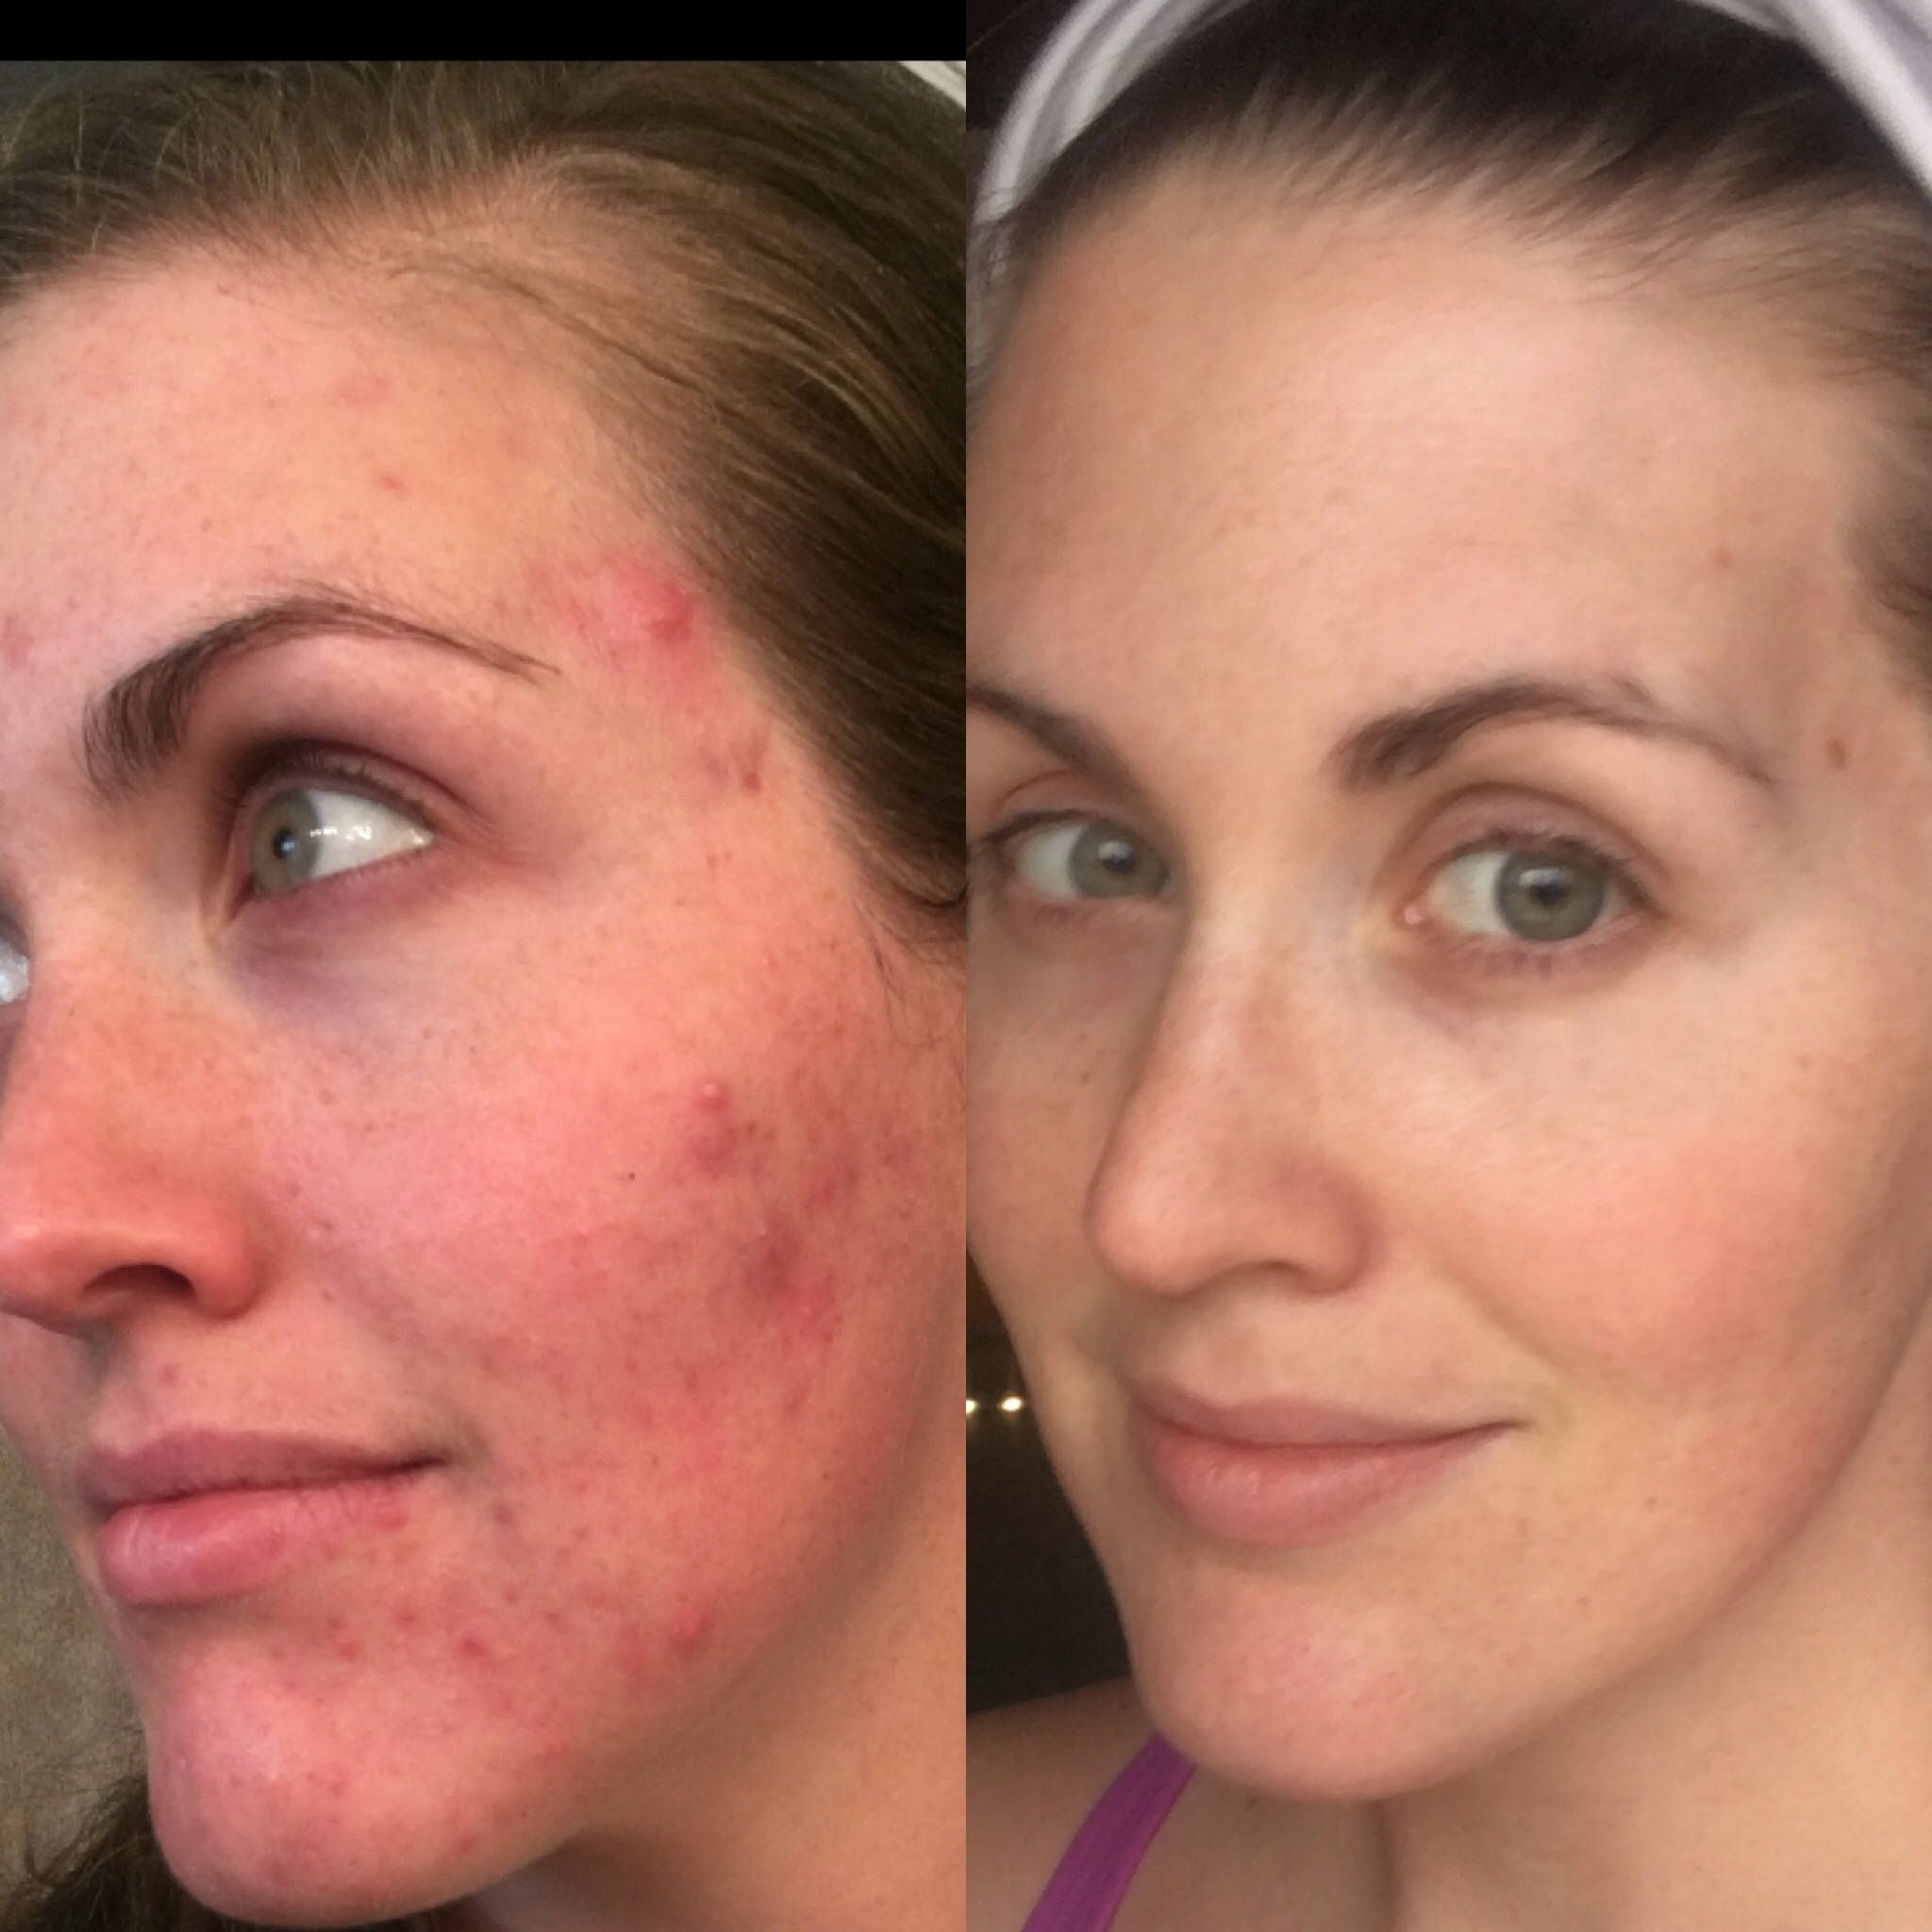 Amazing Before And After Pics From Cystic Acne To Clear Skin With Flying Cow Tallow Wow Flyingcowta Natural Skin Care Facial Steaming The Ordinary Skincare